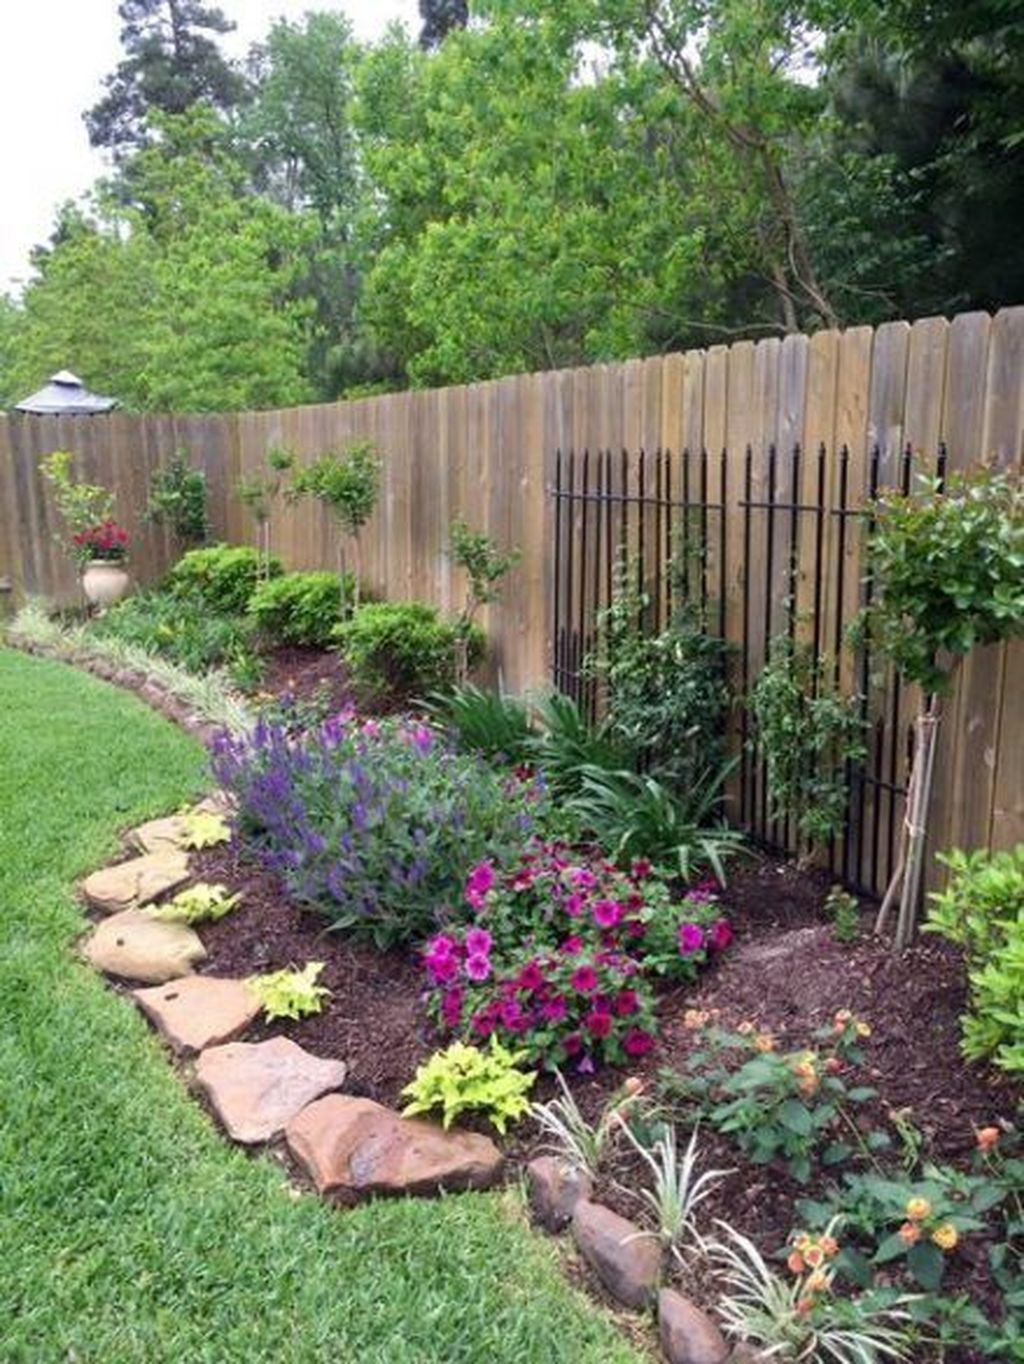 37 Fabulous Garden Beds Along Fence Decorating Ideas Backyard Landscaping Backyard Landscaping Designs Landscaping With Rocks